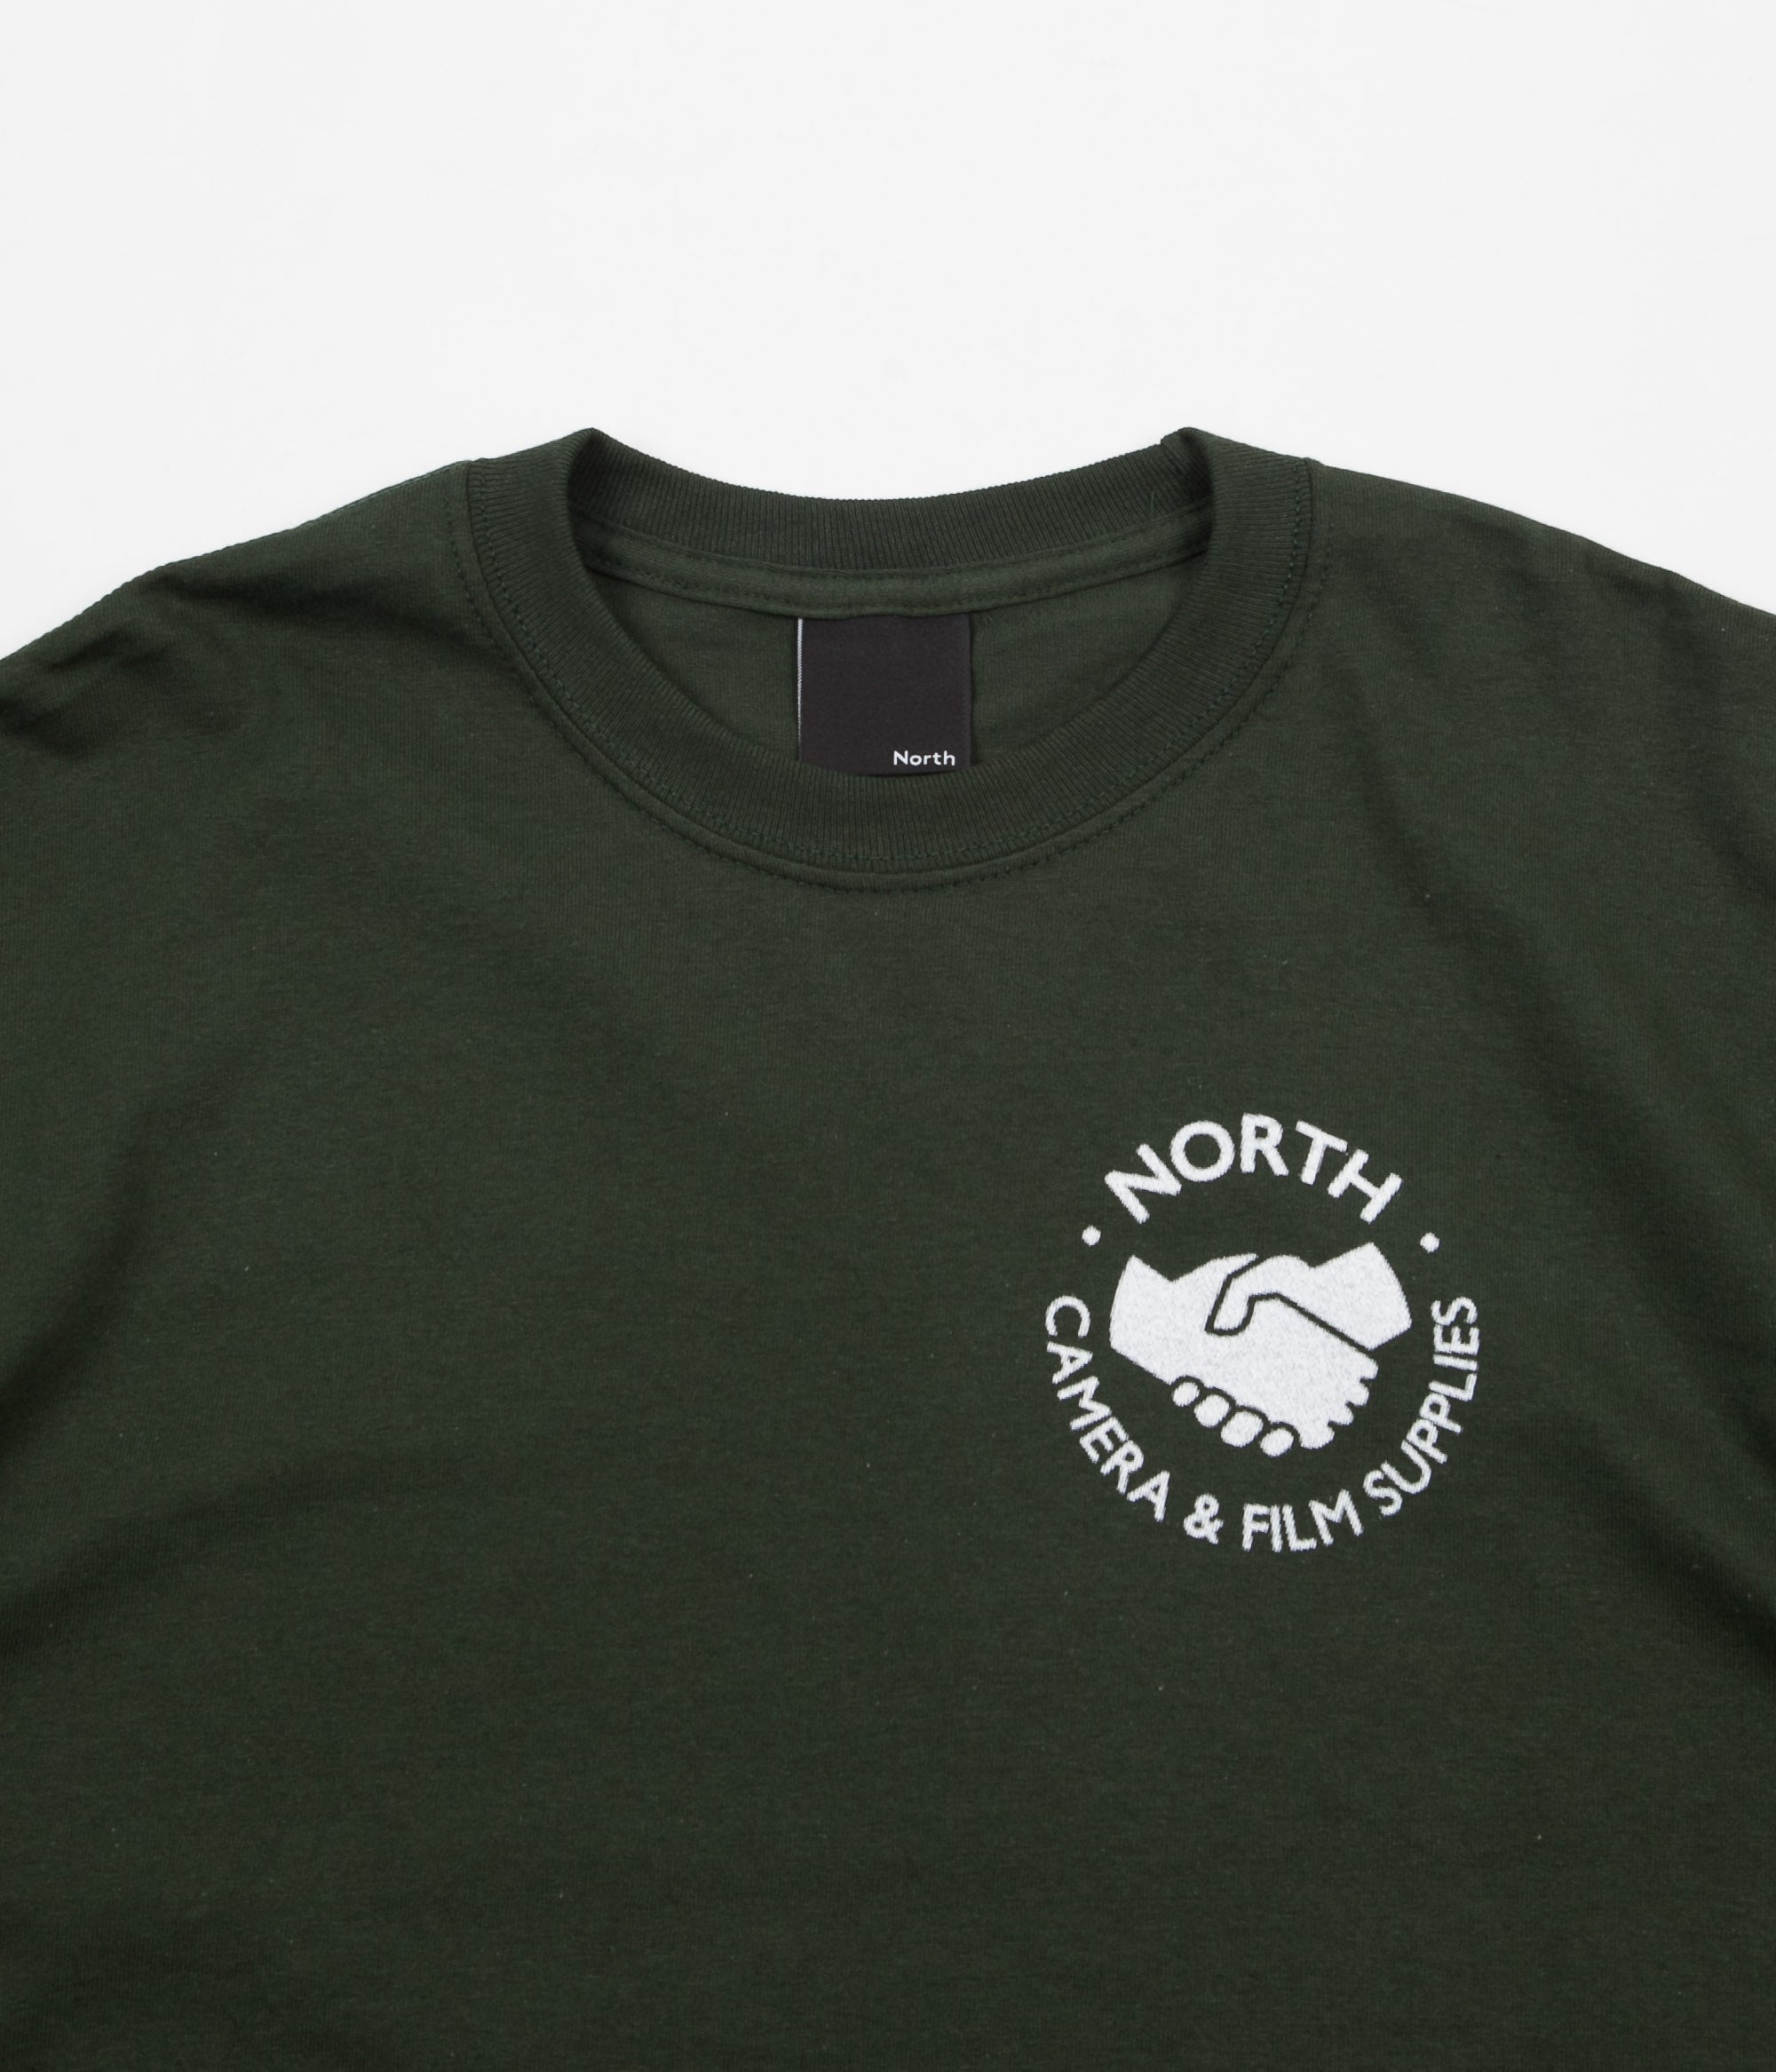 North Skateboard Magazine Supplies Logo Long Sleeve T-Shirt - Forest / White Halftone